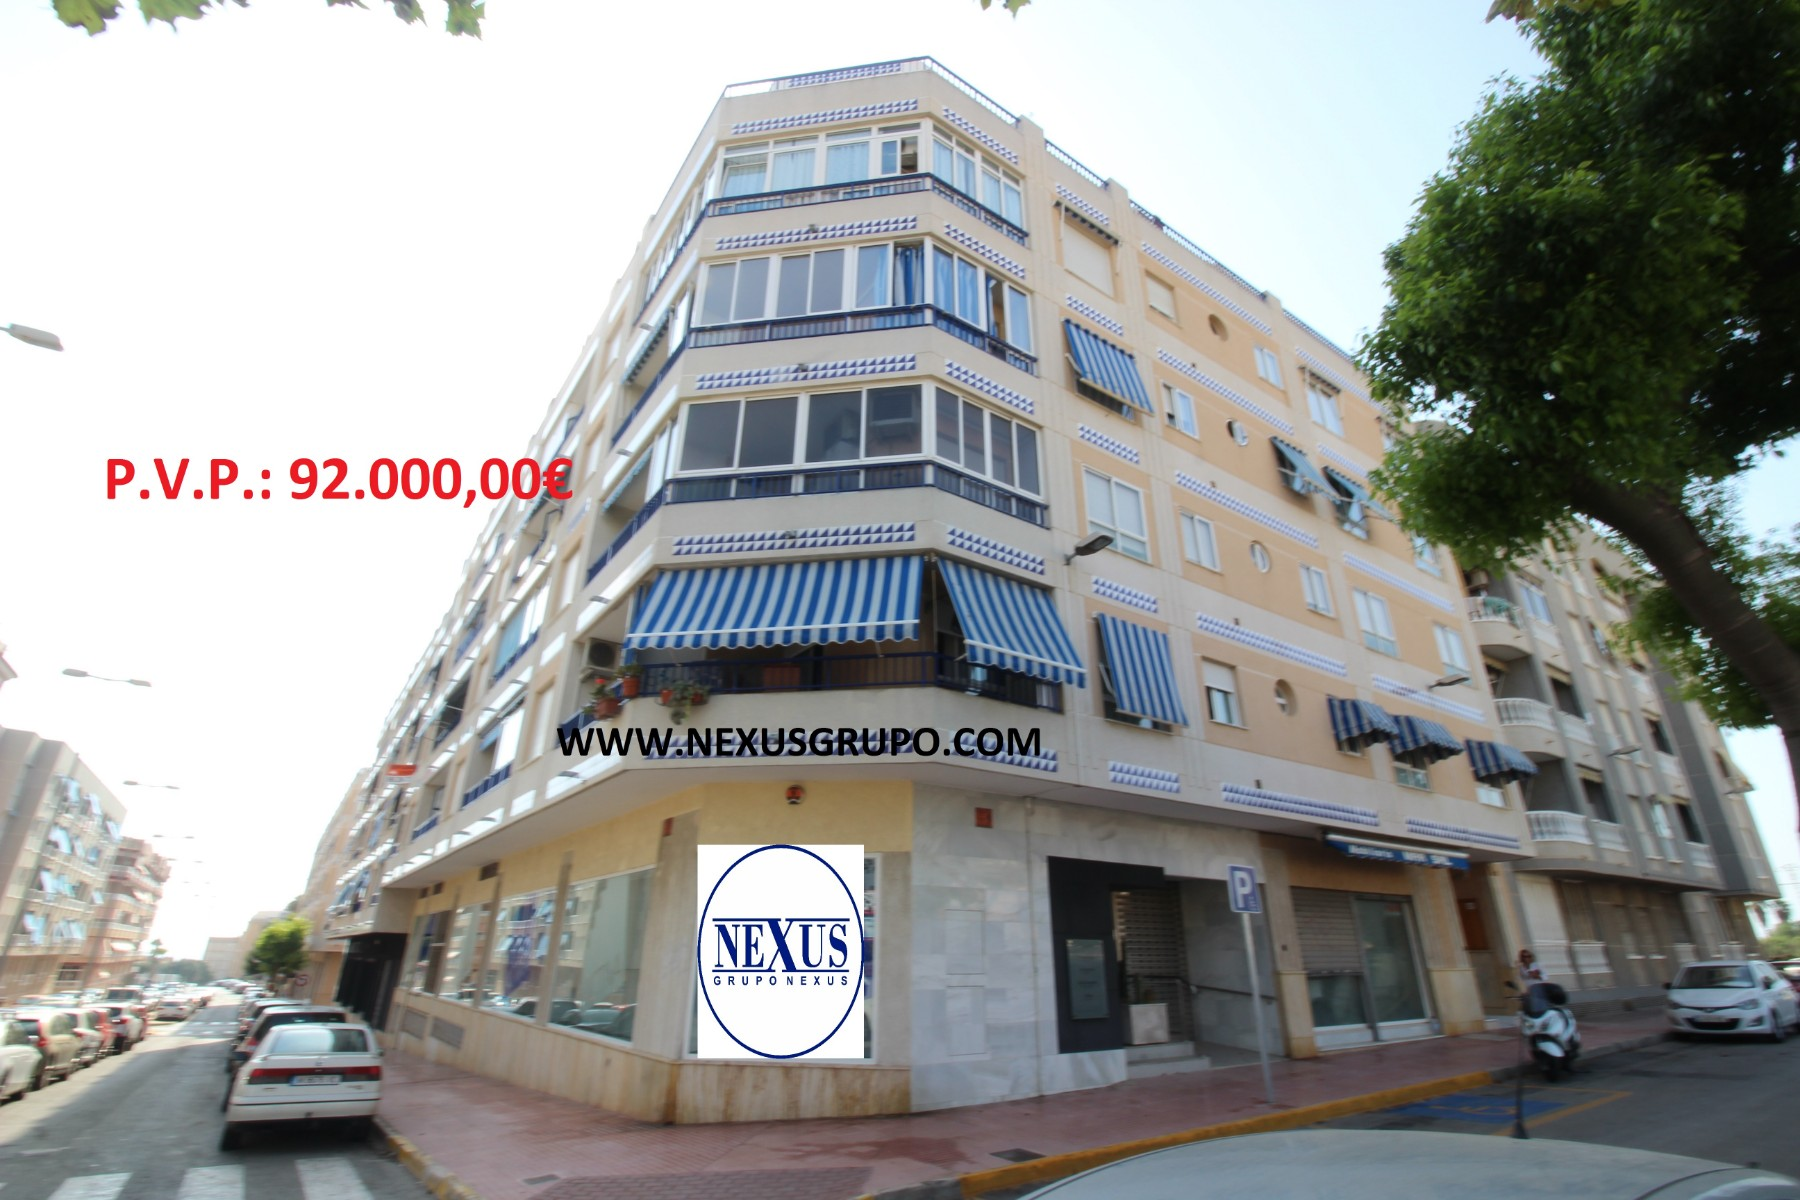 ​Real Estate Grupo Nexus, presents: